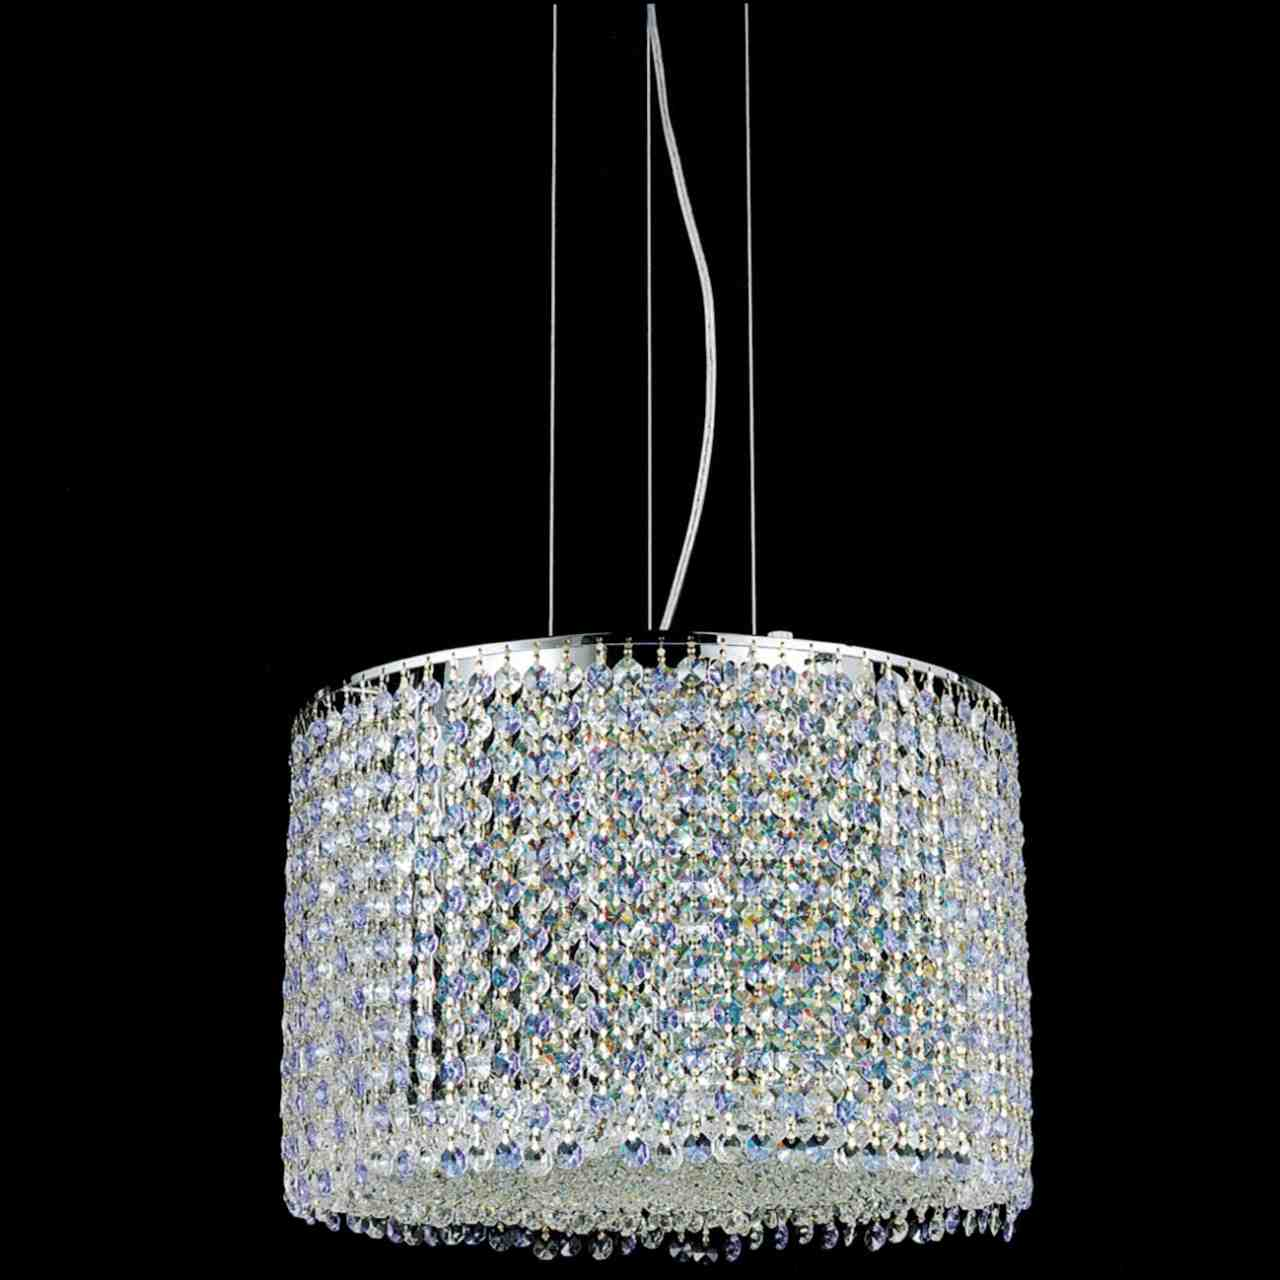 Brizzo lighting stores 16 rainbow modern round crystal chandelier picture of 16 rainbow modern round crystal chandelier polished chrome 12 lights aloadofball Image collections